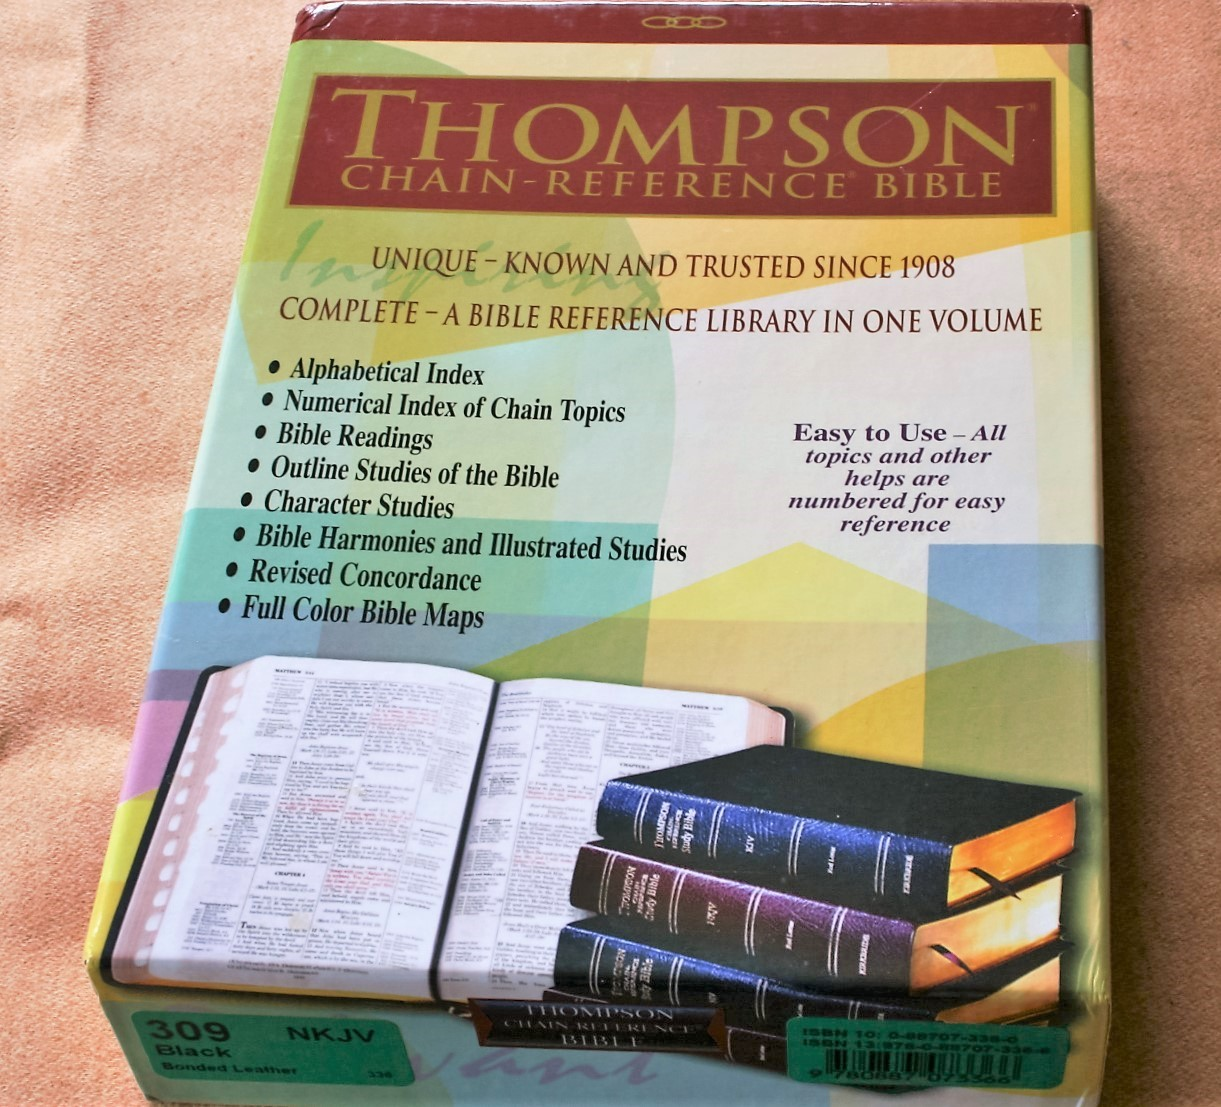 Guide Com: Kirkbride NKJV Thompson Chain Reference Bible Review